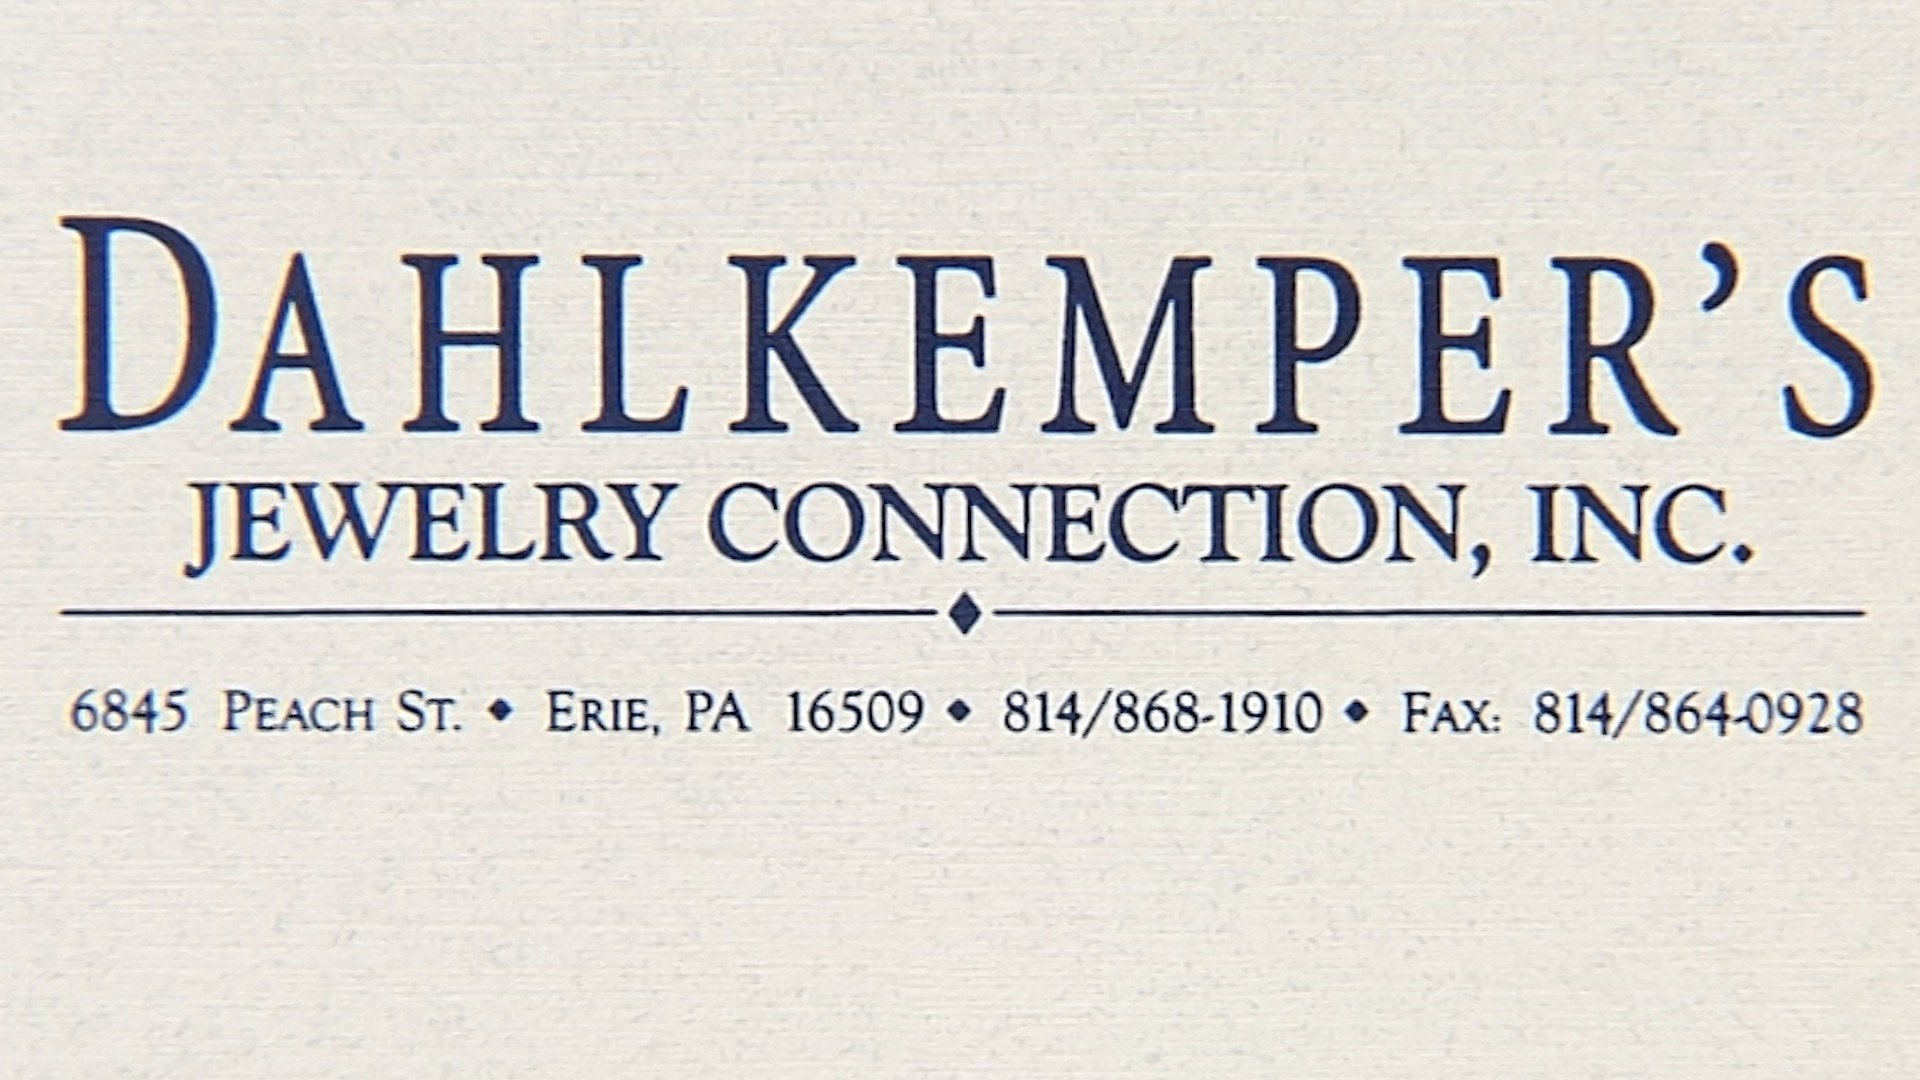 dahlkemper 39 s jewelry connection giving you the business